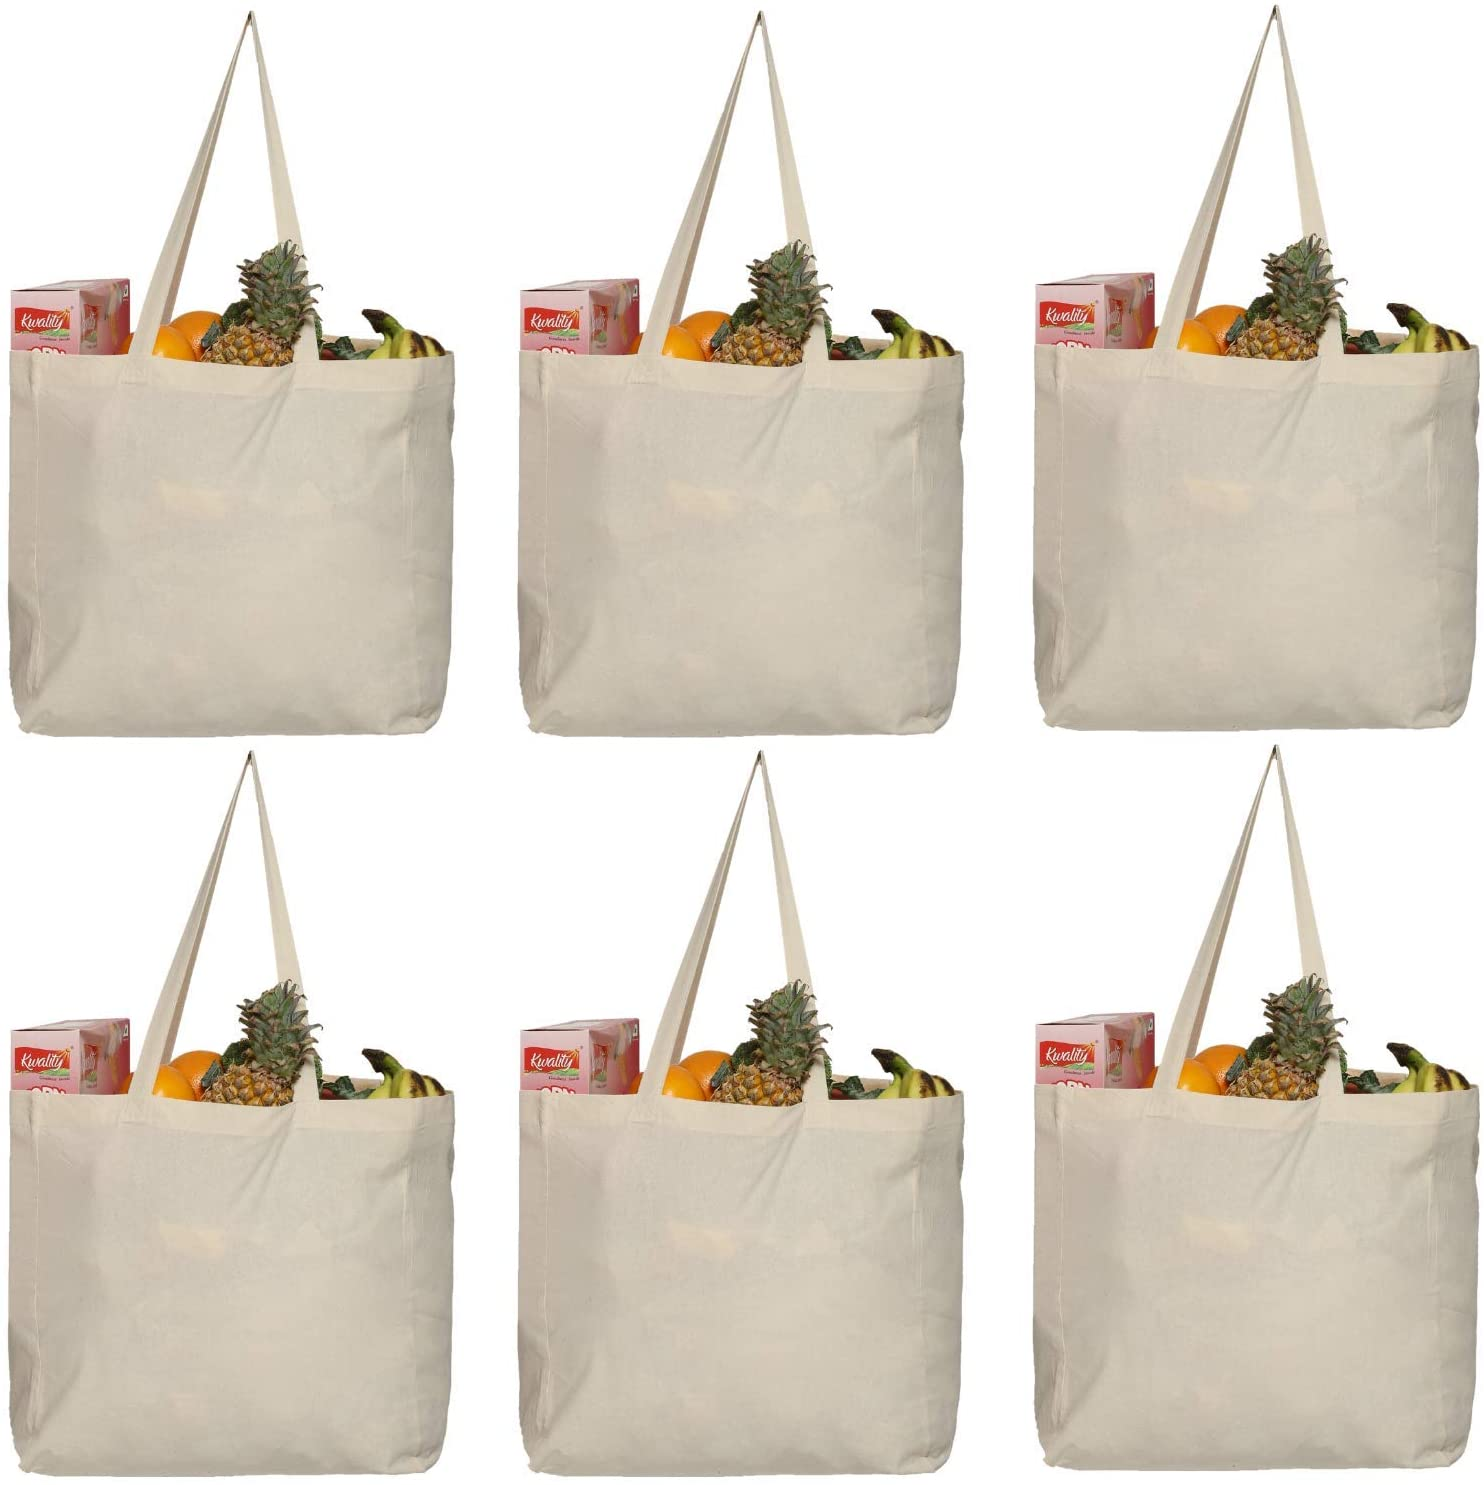 Why Buy Canvas Tote Bags in Bulk? - You Guessed it Right!